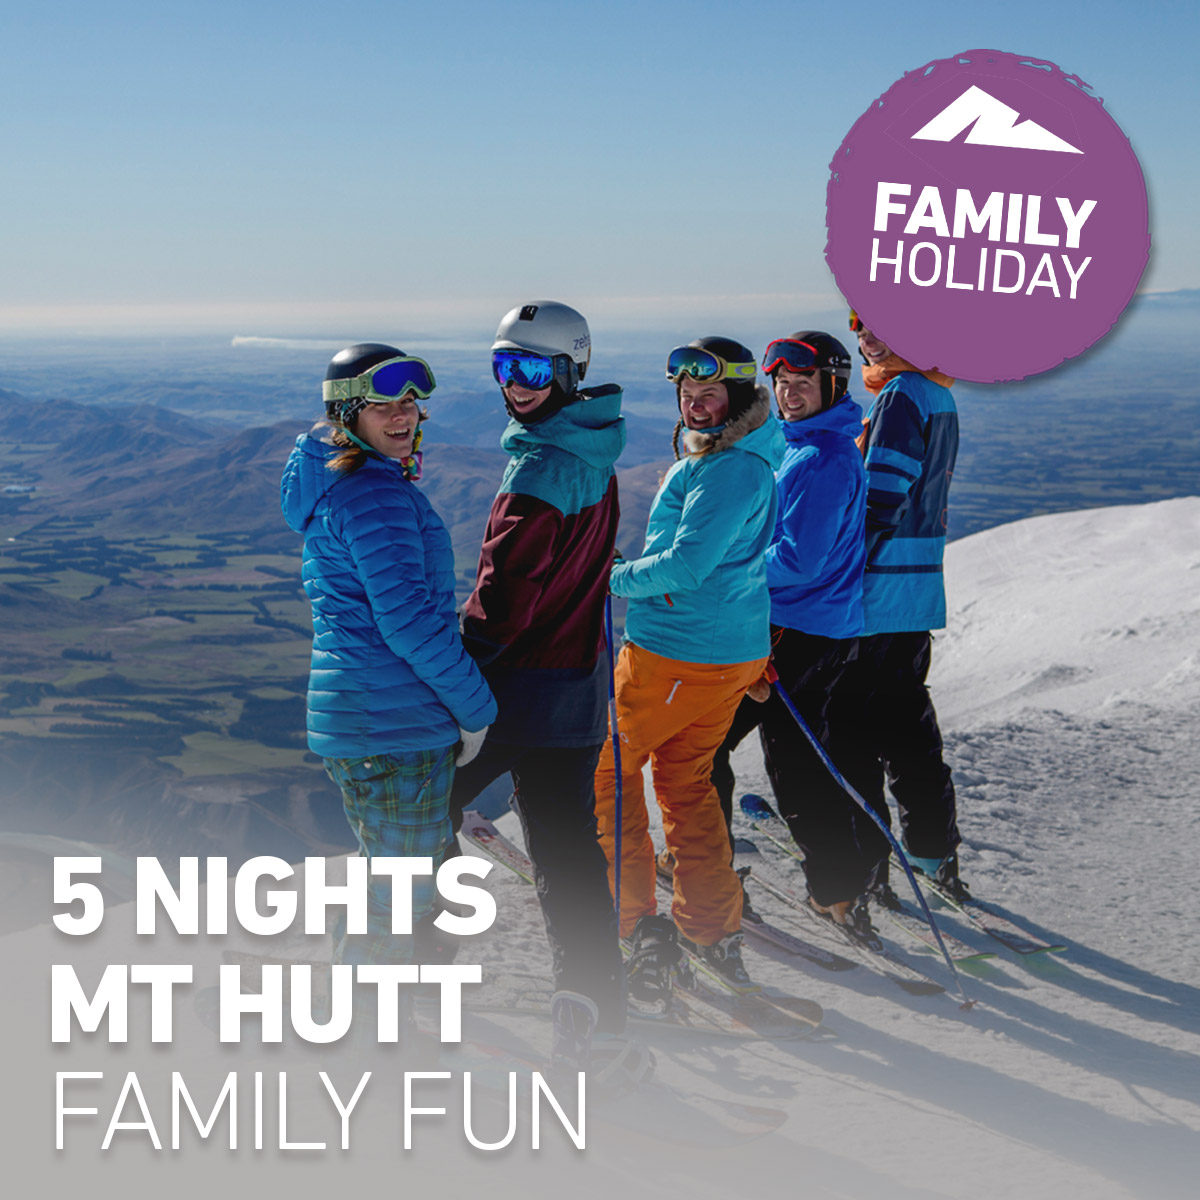 5 Nights Mt Hutt Family Fun.